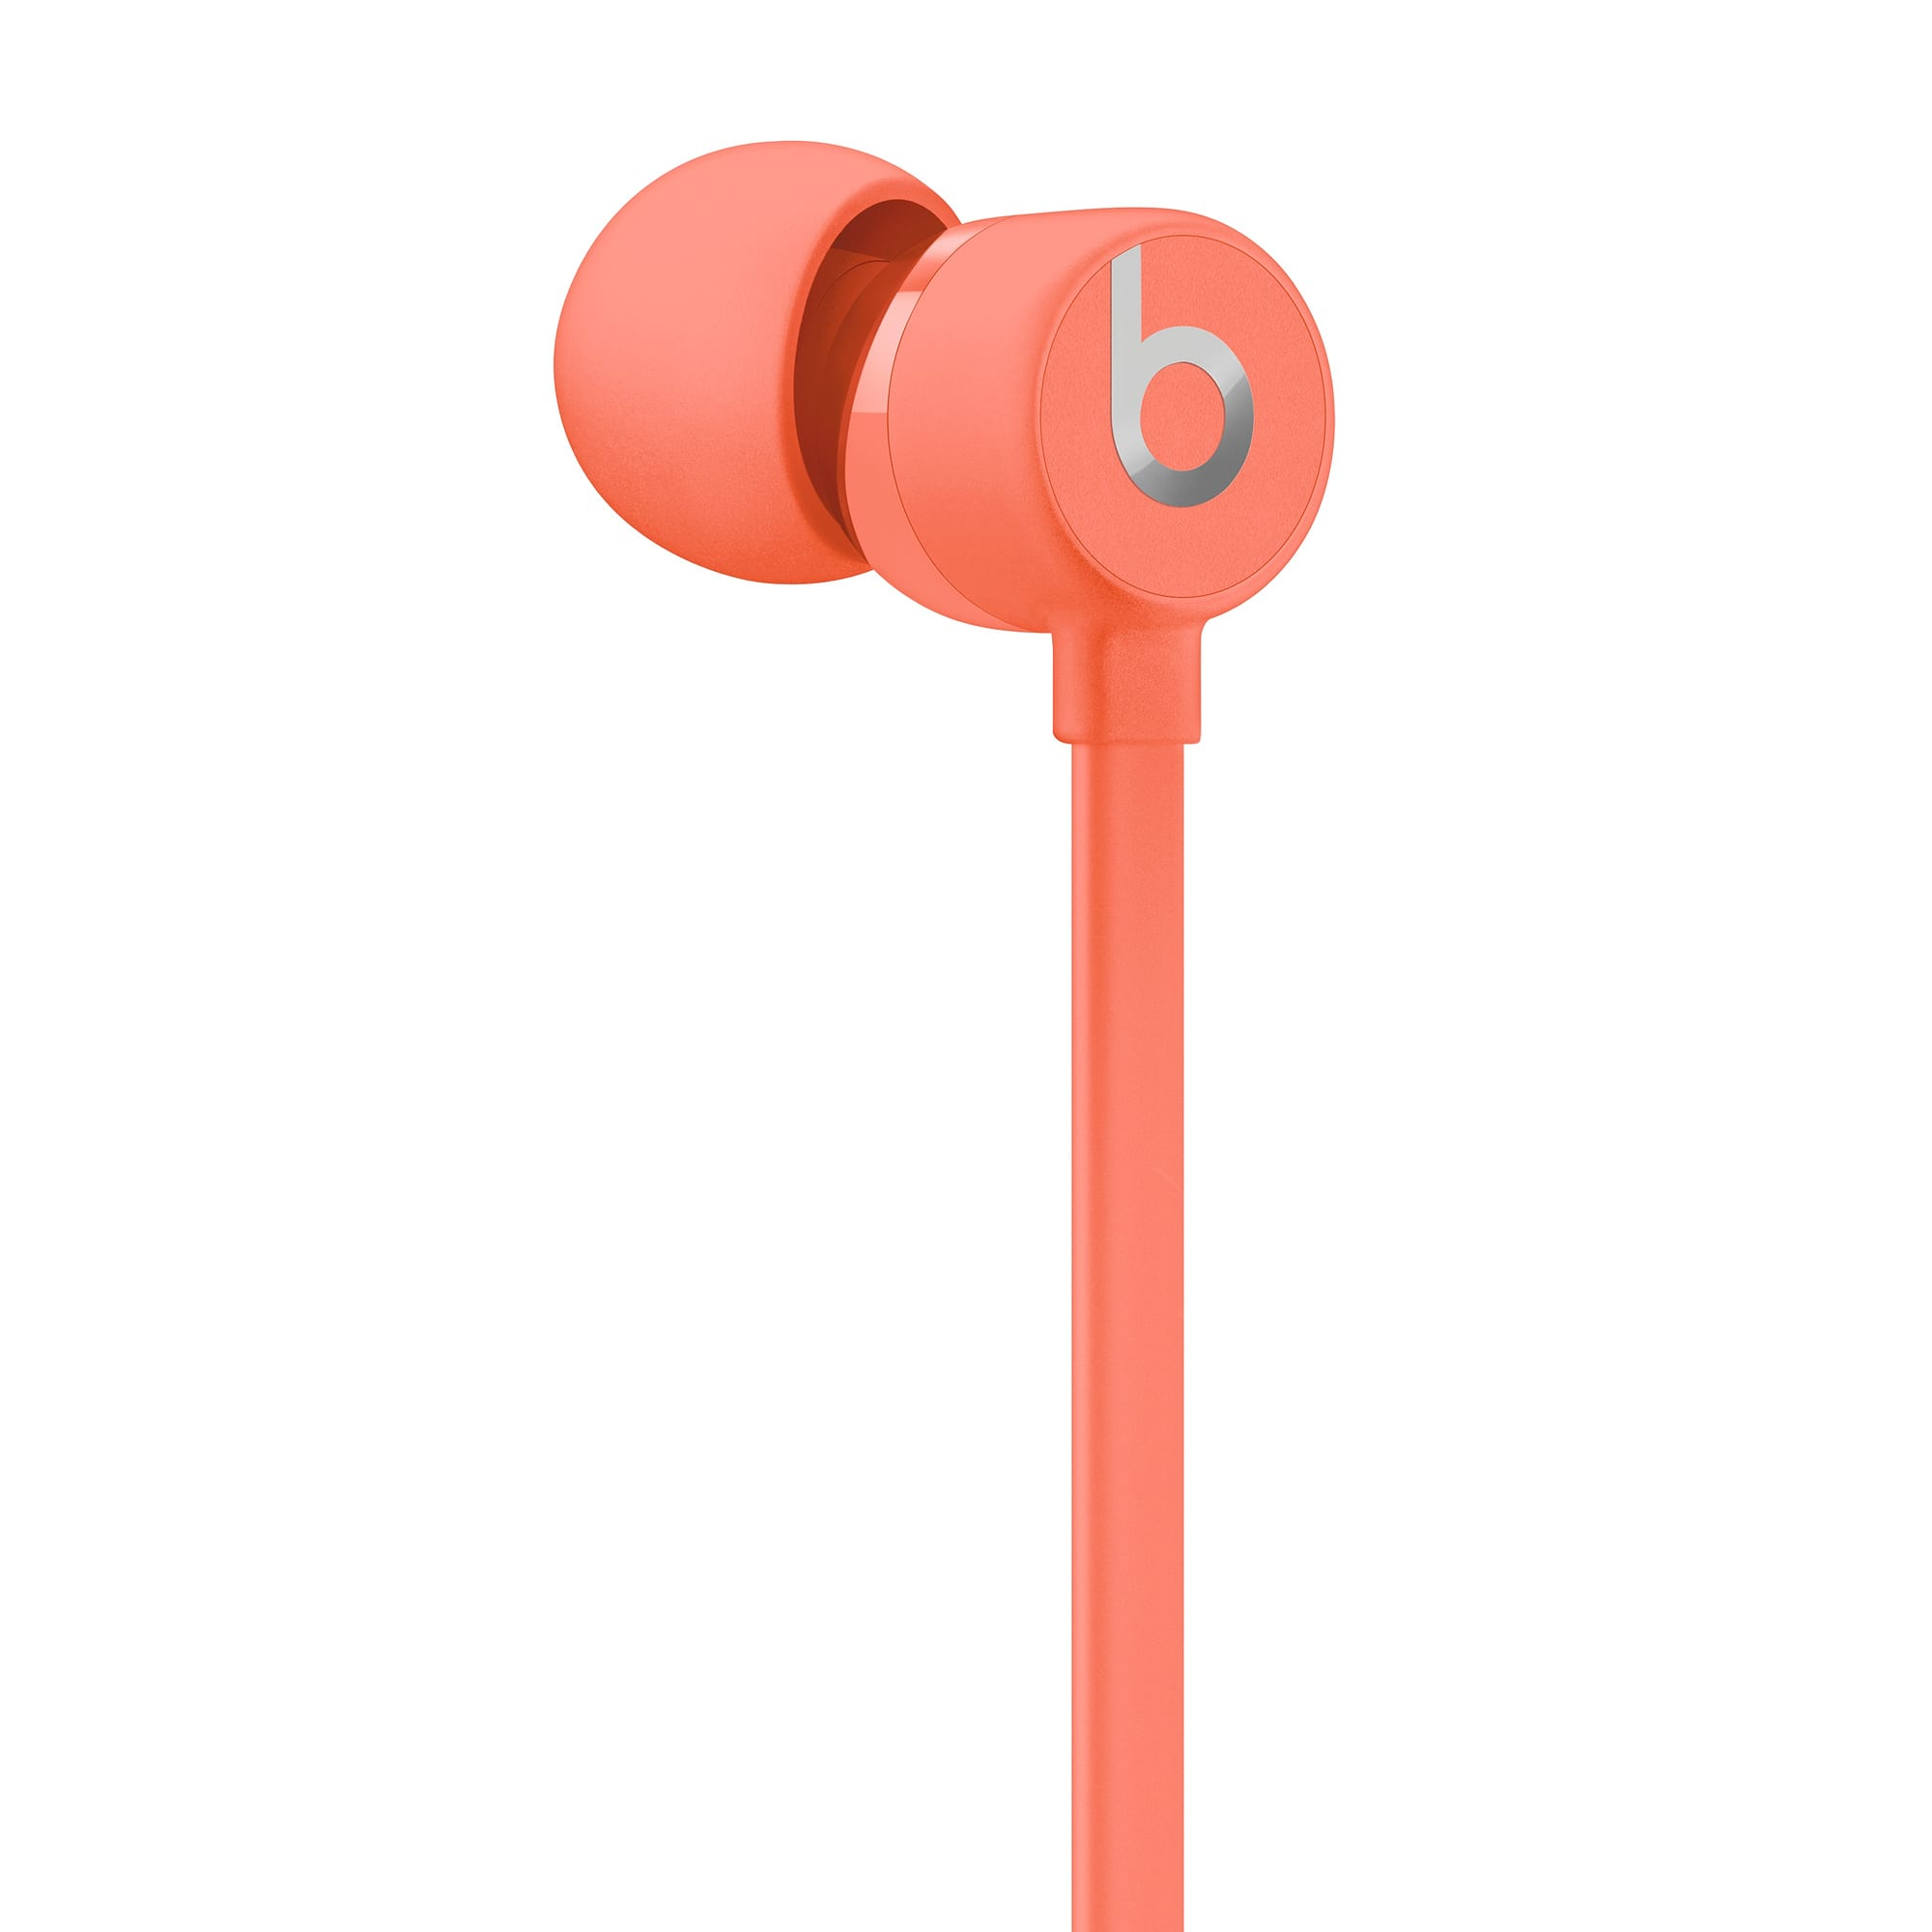 urBeats3 Earphones with Lightning Connector $30 at Target $29.99